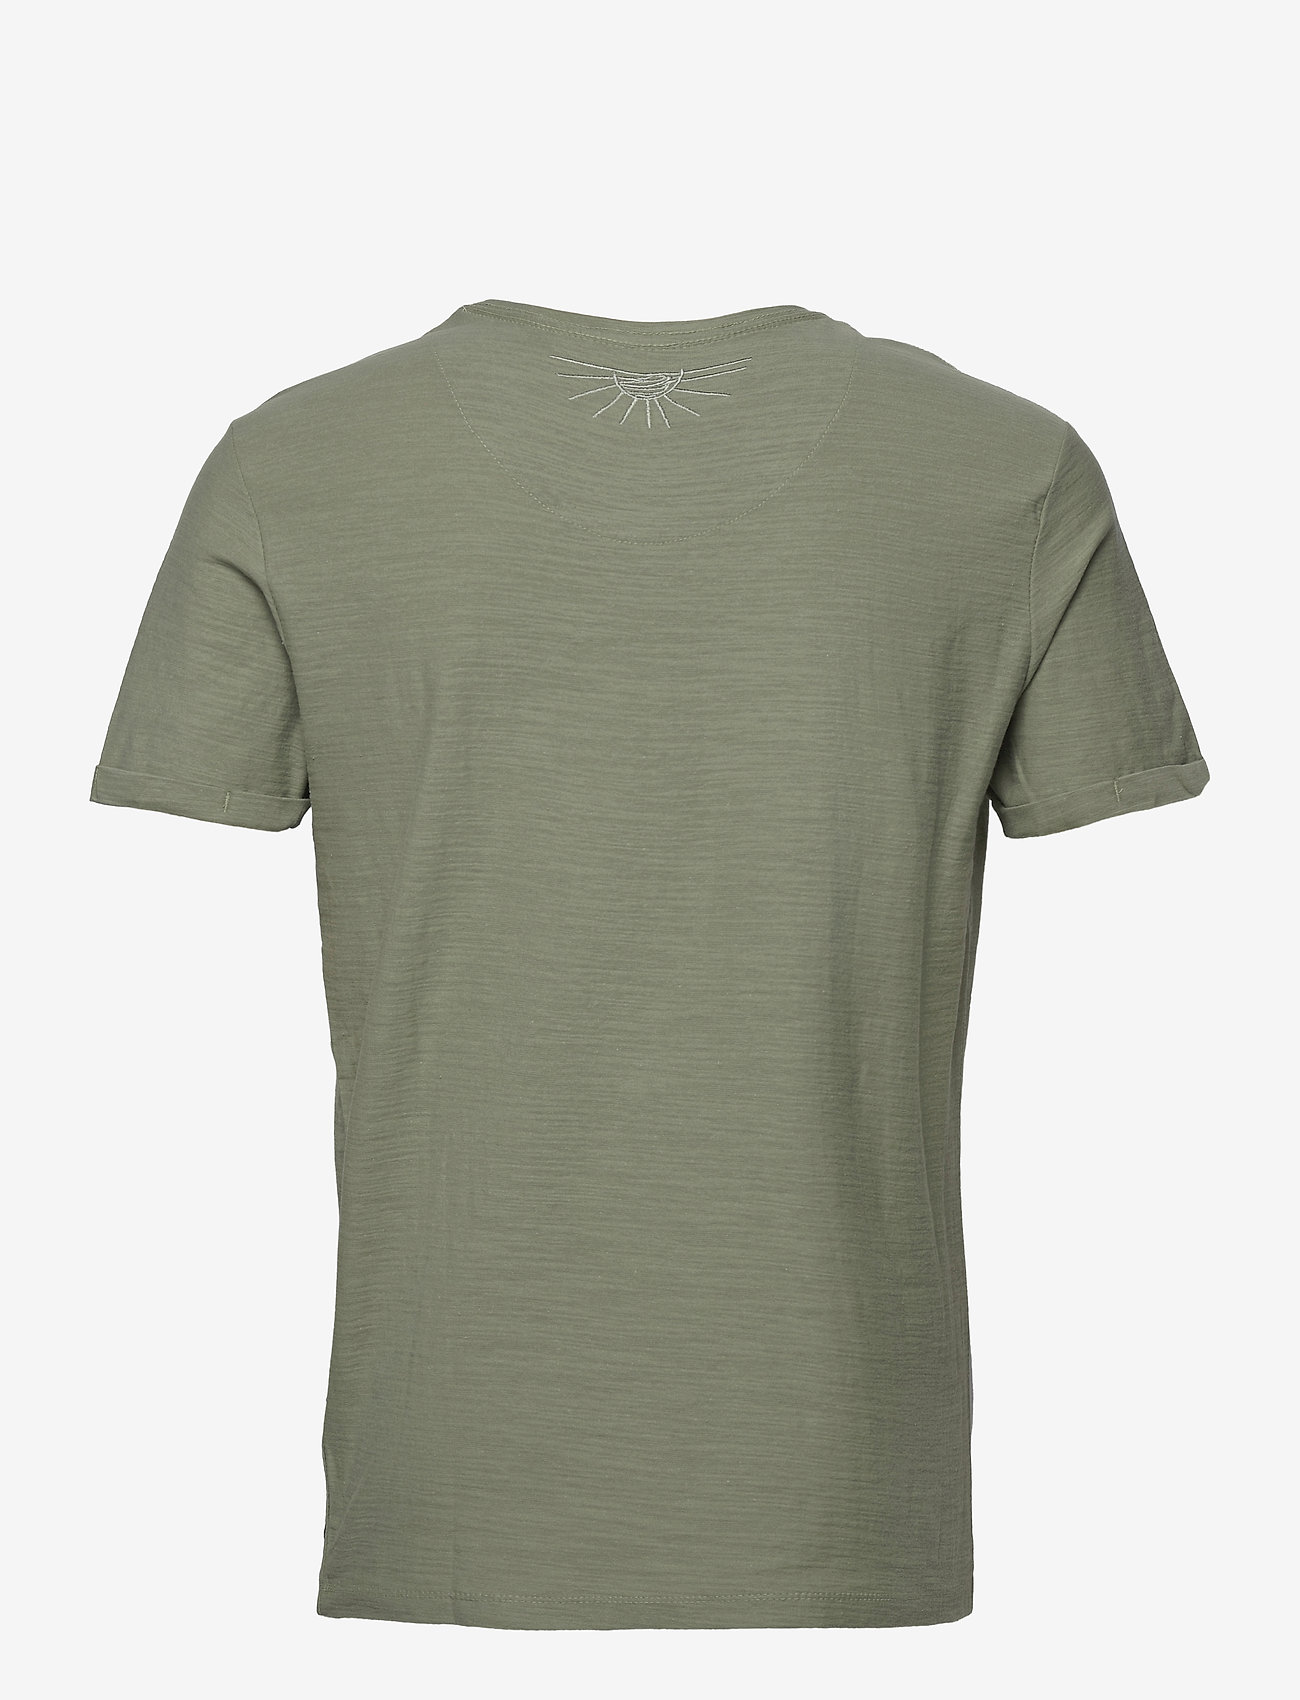 Blend - Tee - basic t-shirts - oil green - 1